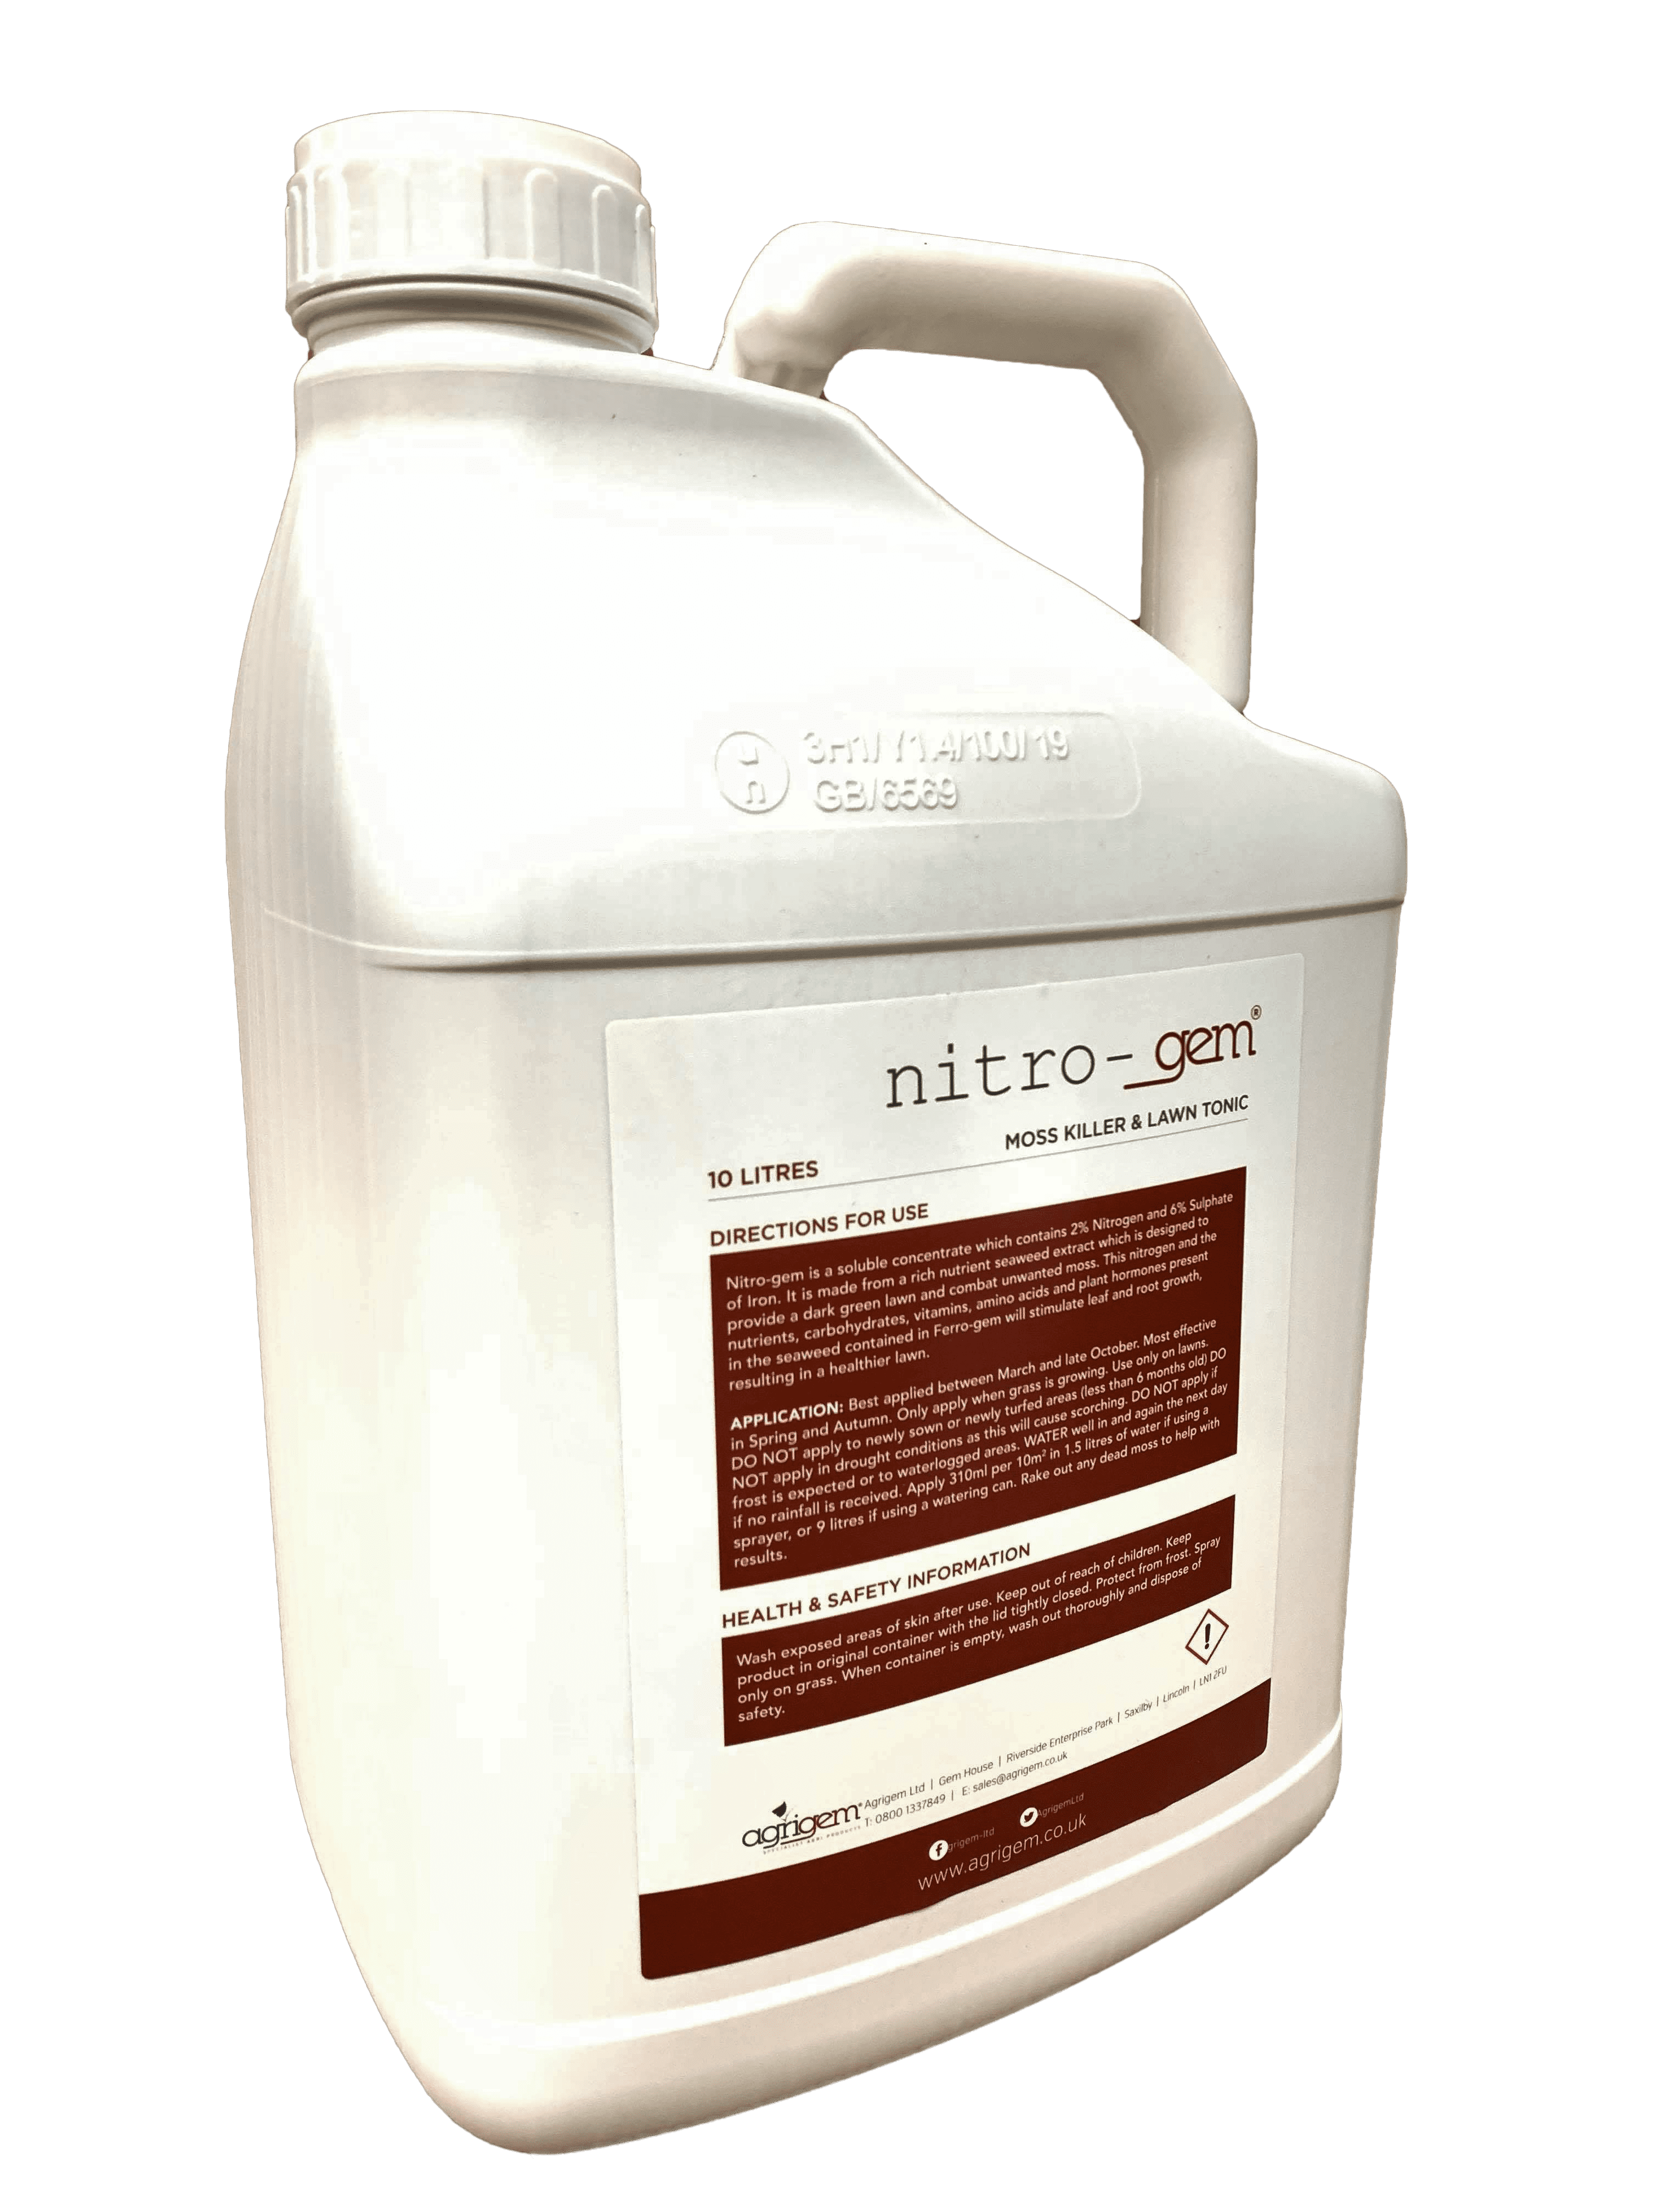 Nitro-gem Lawn Tonic 10L Moss Killer & Grass Fertiliser